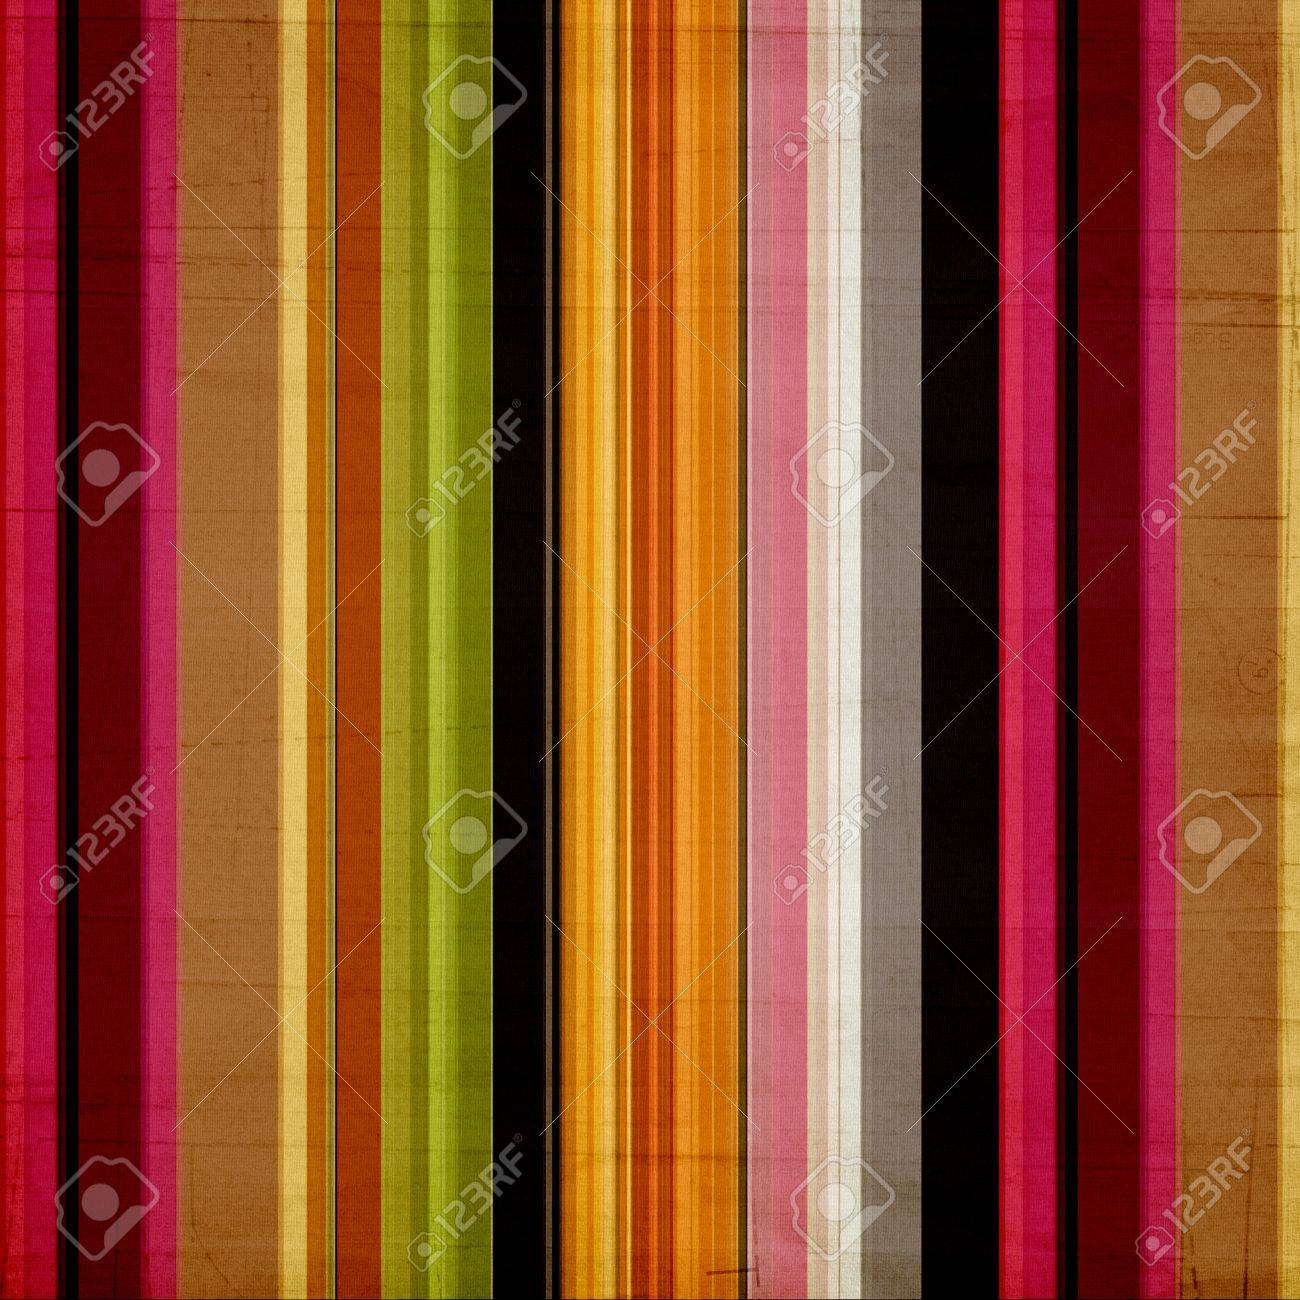 Shabby textile Background with colorful  stripes Stock Photo - 11826901